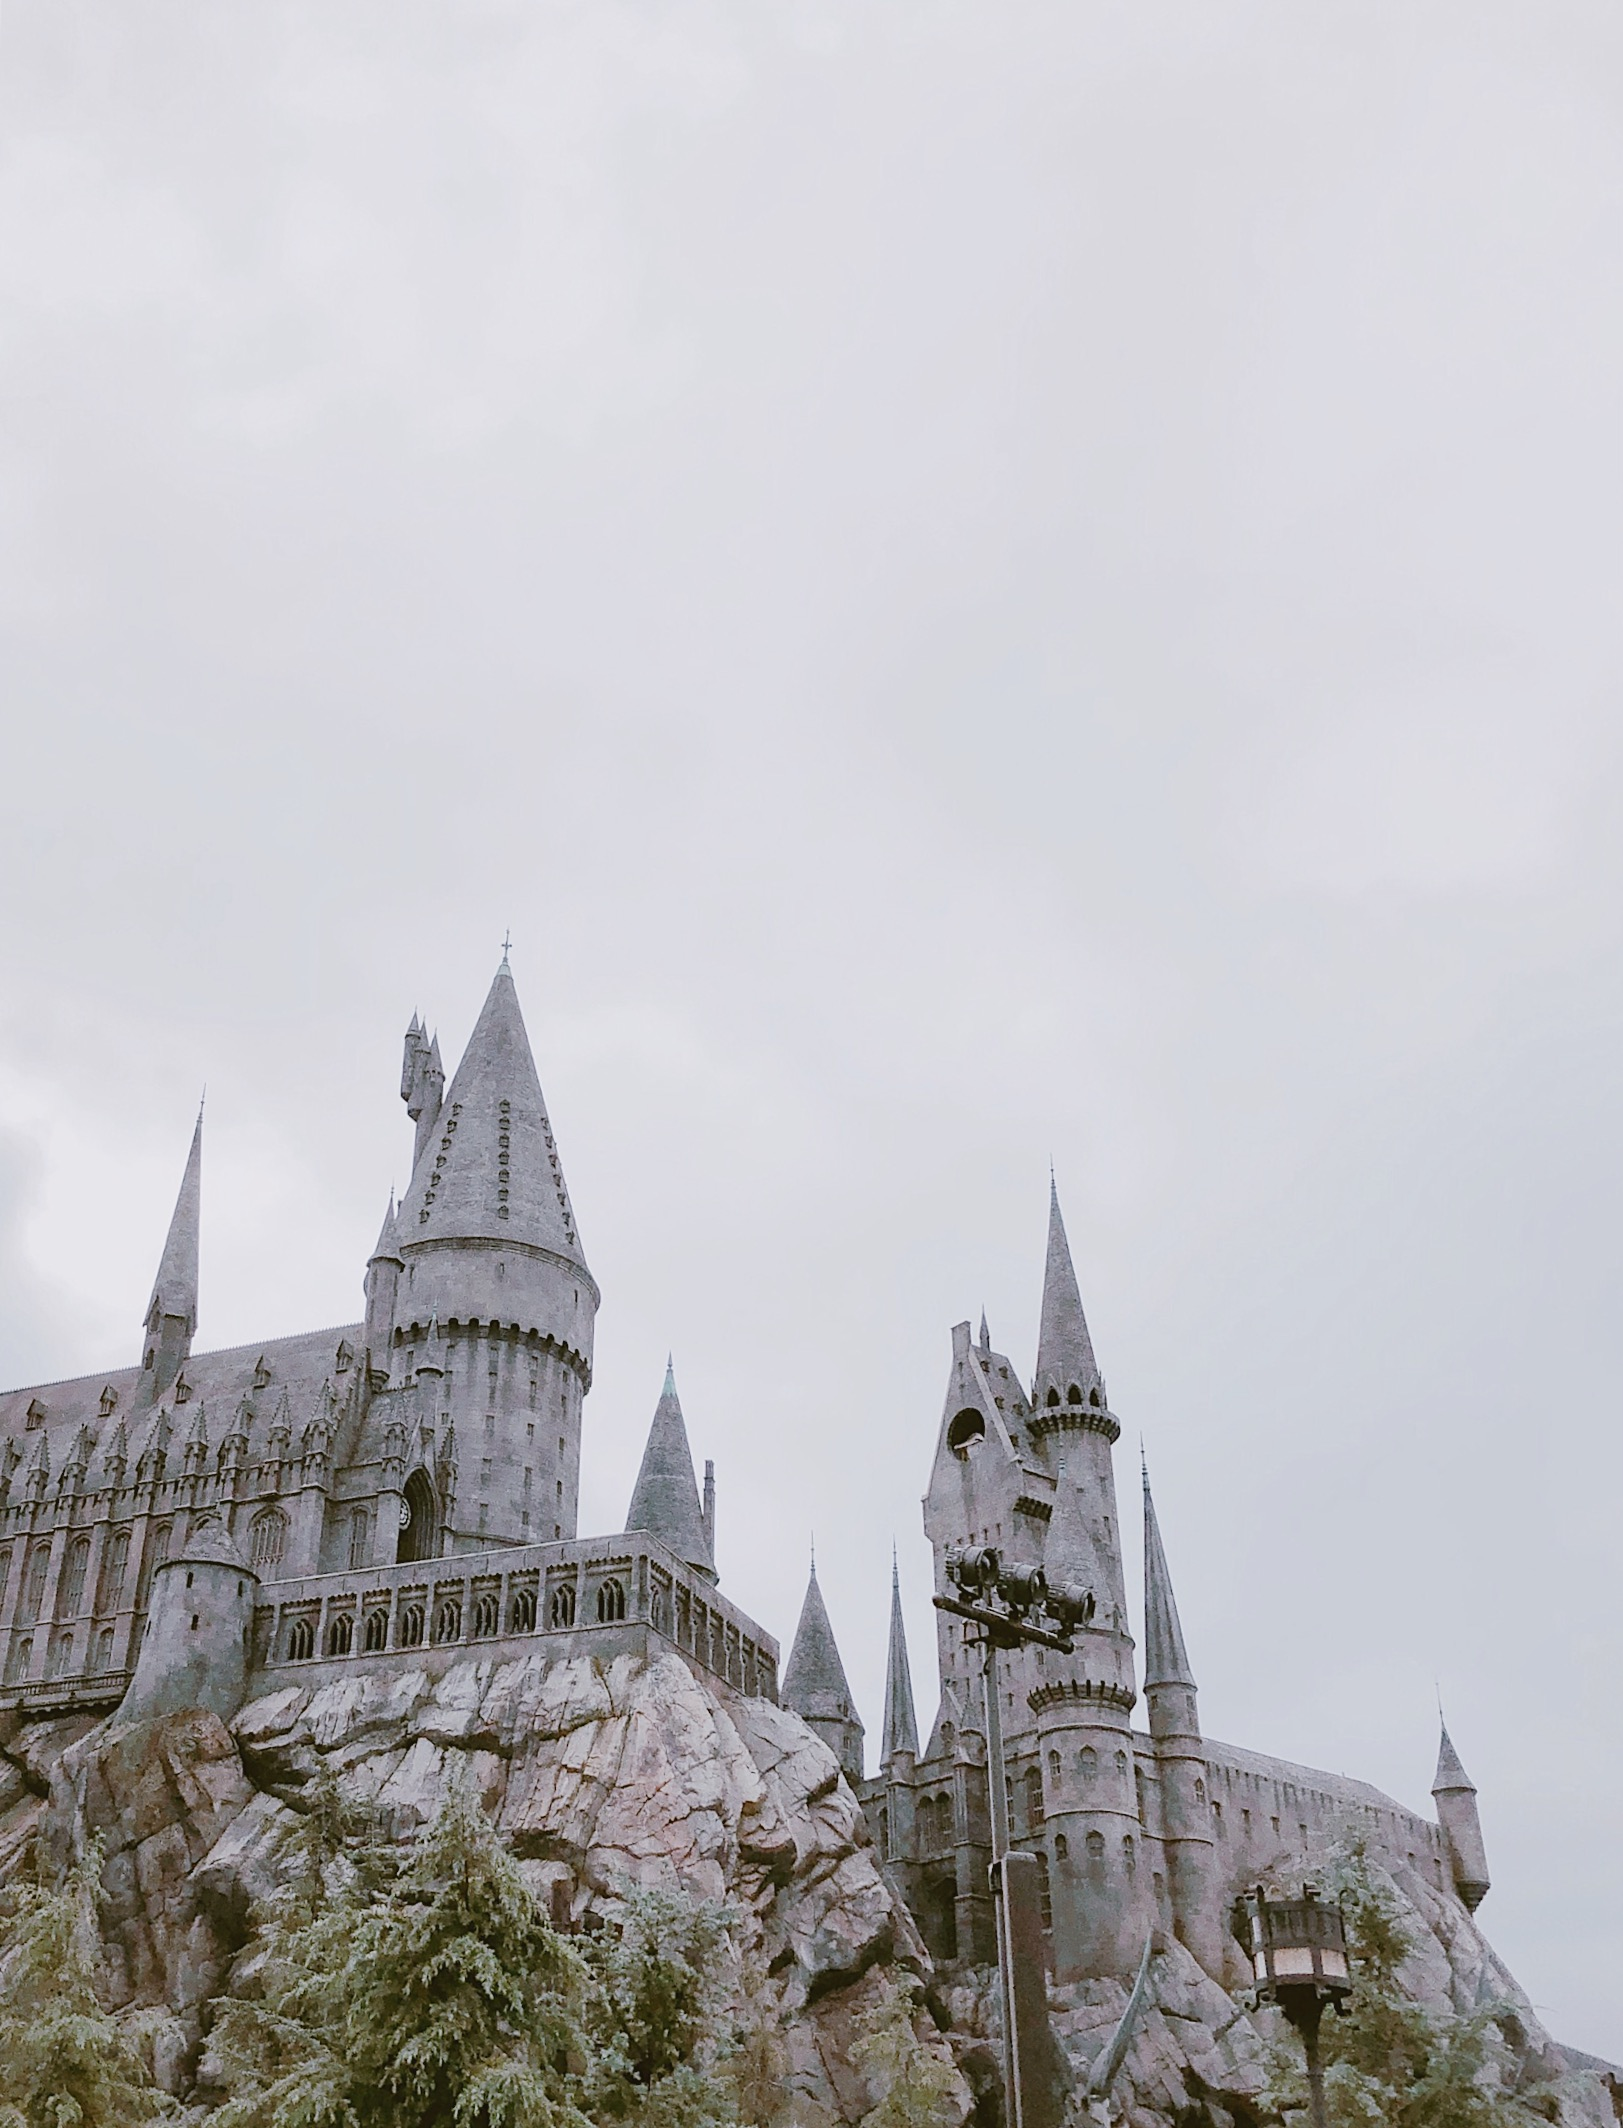 The L.A. Weekend Bucket List: Explore The Wizarding World of Harry Potter